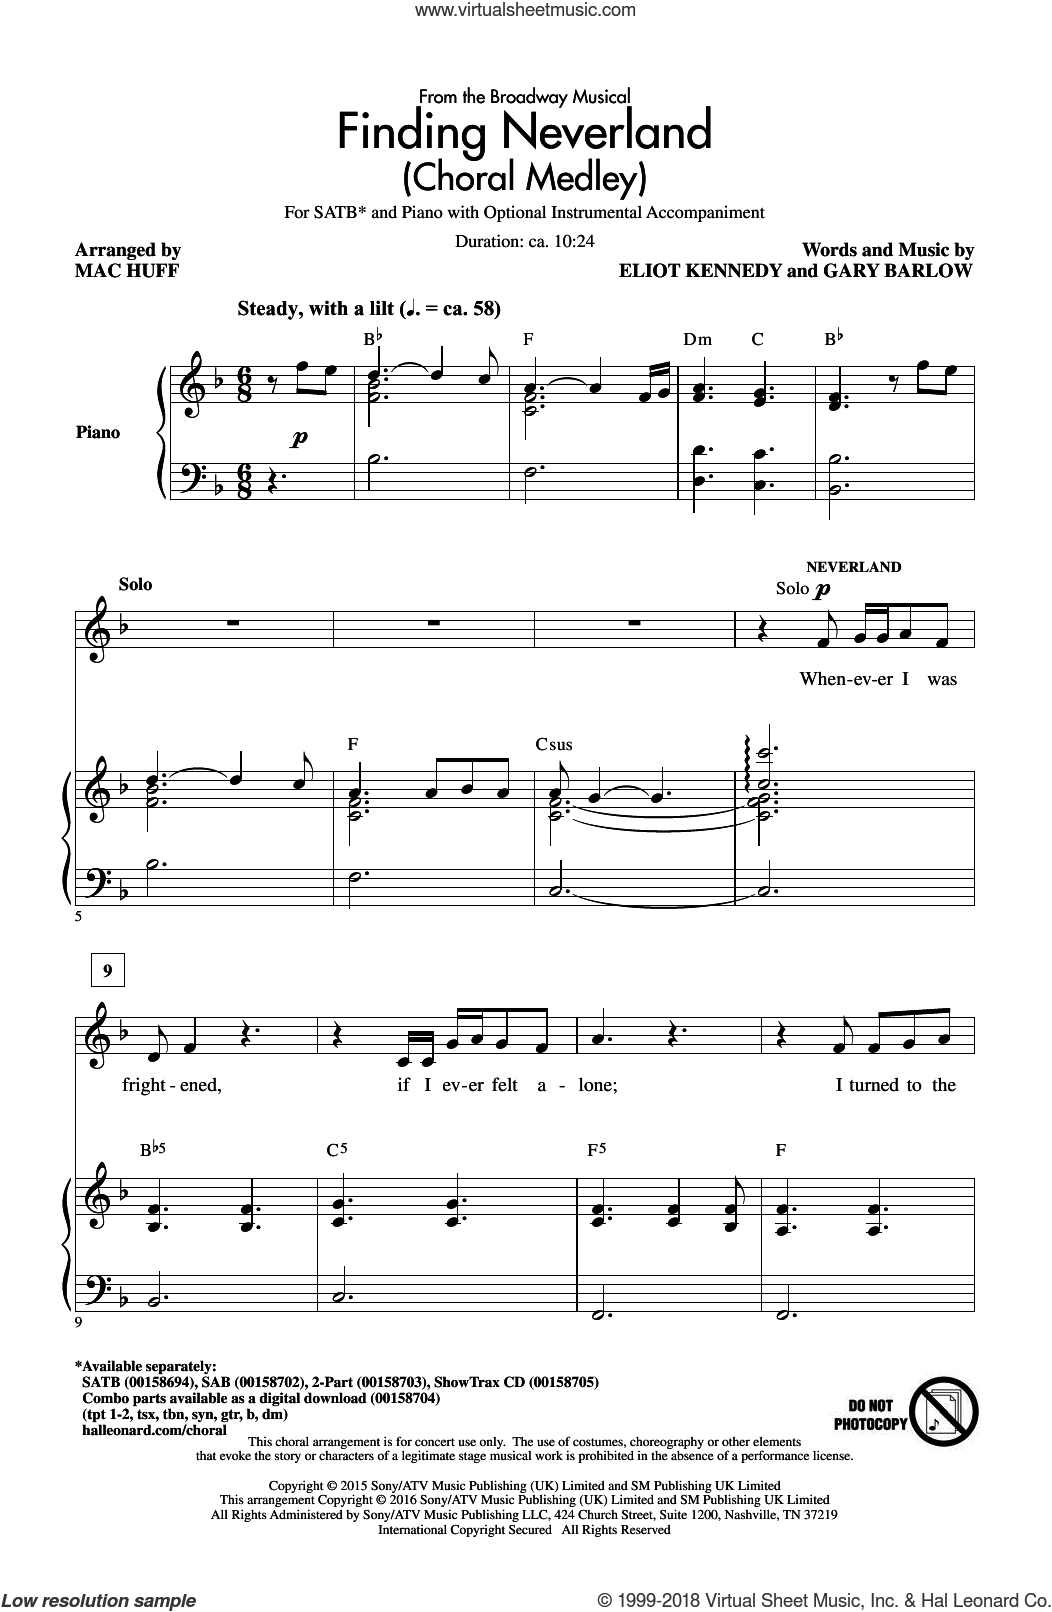 Finding Neverland (Choral Medley) sheet music for choir (SATB: soprano, alto, tenor, bass) by Gary Barlow, Mac Huff and Eliot Kennedy, intermediate